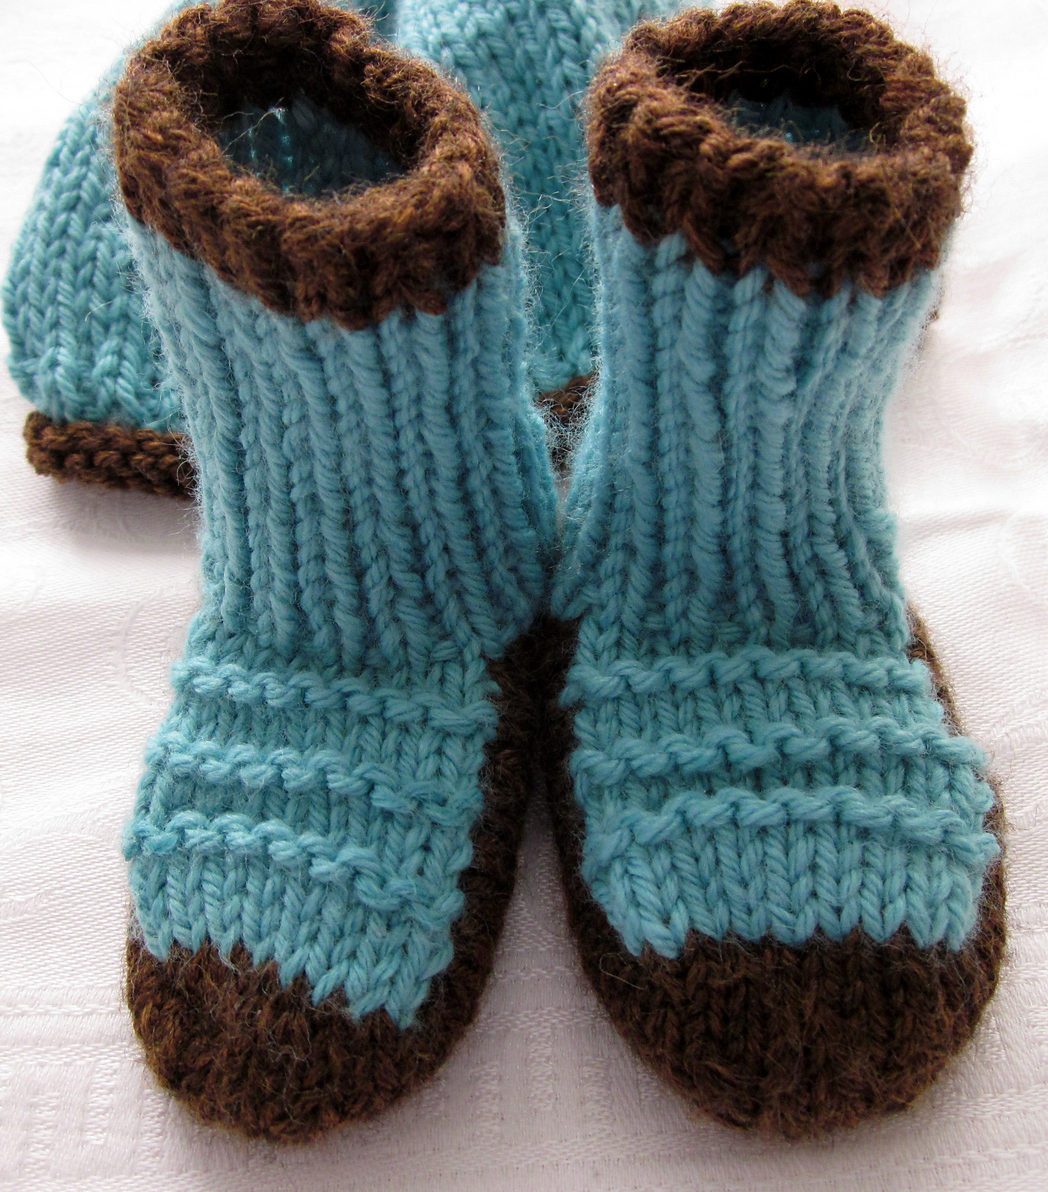 New Baby Bootie Knitting Patterns Baby Booties Knitting Pattern Of Awesome 47 Pics Baby Booties Knitting Pattern